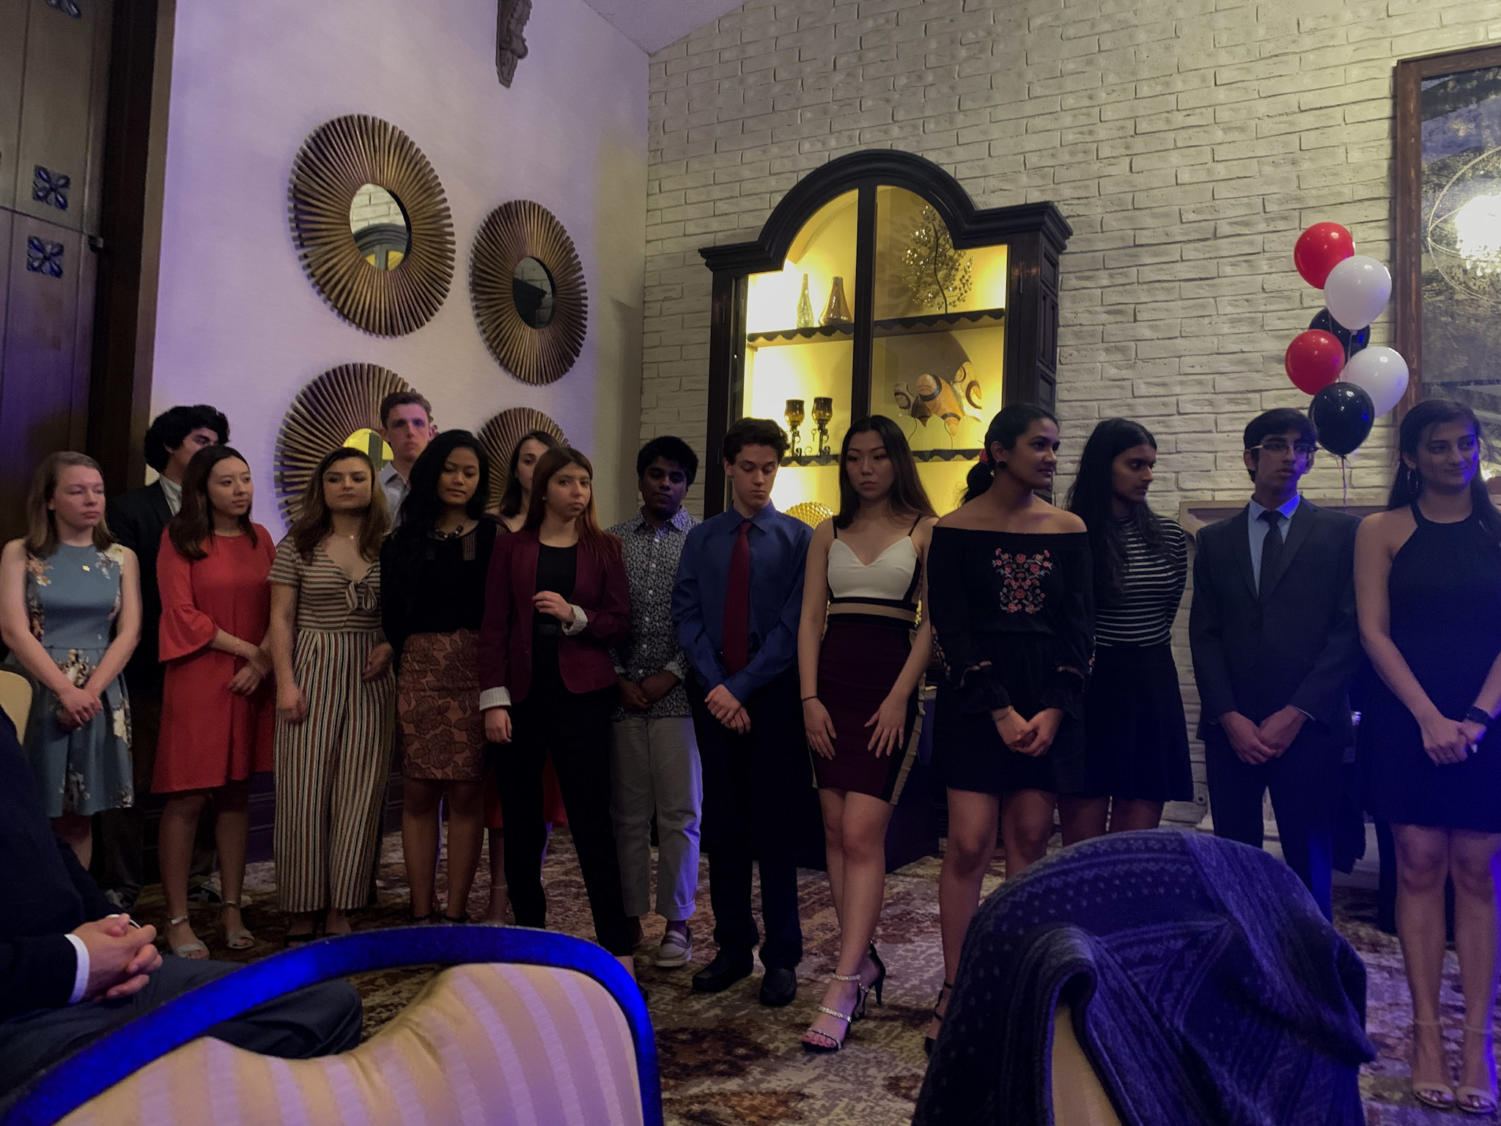 A+group+of+The+Sidekick+staffers+line+up+to+be+inducted+into+Quill+and+Scroll+Honor+Society+for+High+School+Journalists+at+the+2019+Sidekick+Newspaper+Awards+Dinner+at+Las+Colinas+Country+Club+on+Thursday.++The+Sidekick+banquet+is+an+event+for+staff+members+and+their+guests+to+look+back+on+memories+from+this+past+year+and+congratulate+their+peers+who+won+awards.++